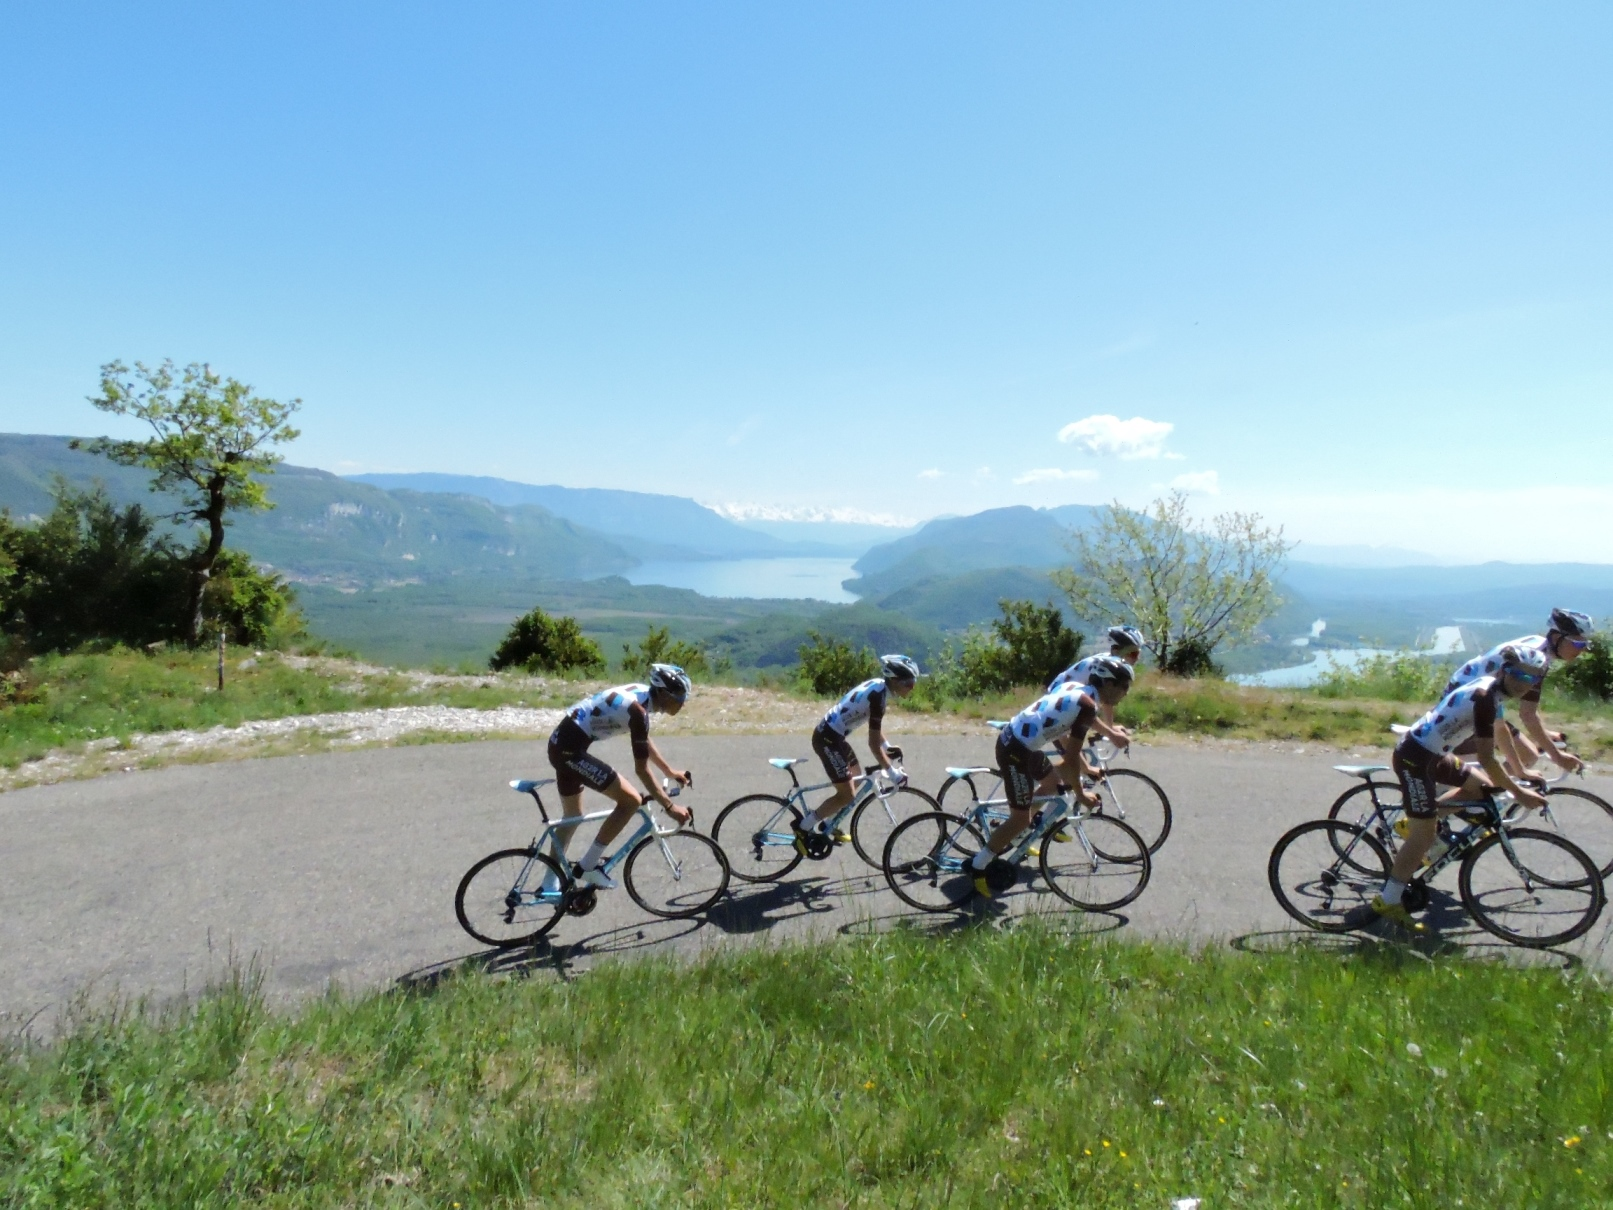 CAR-FREE CYCLING DAYS OF THE GRAND COLOMBIER